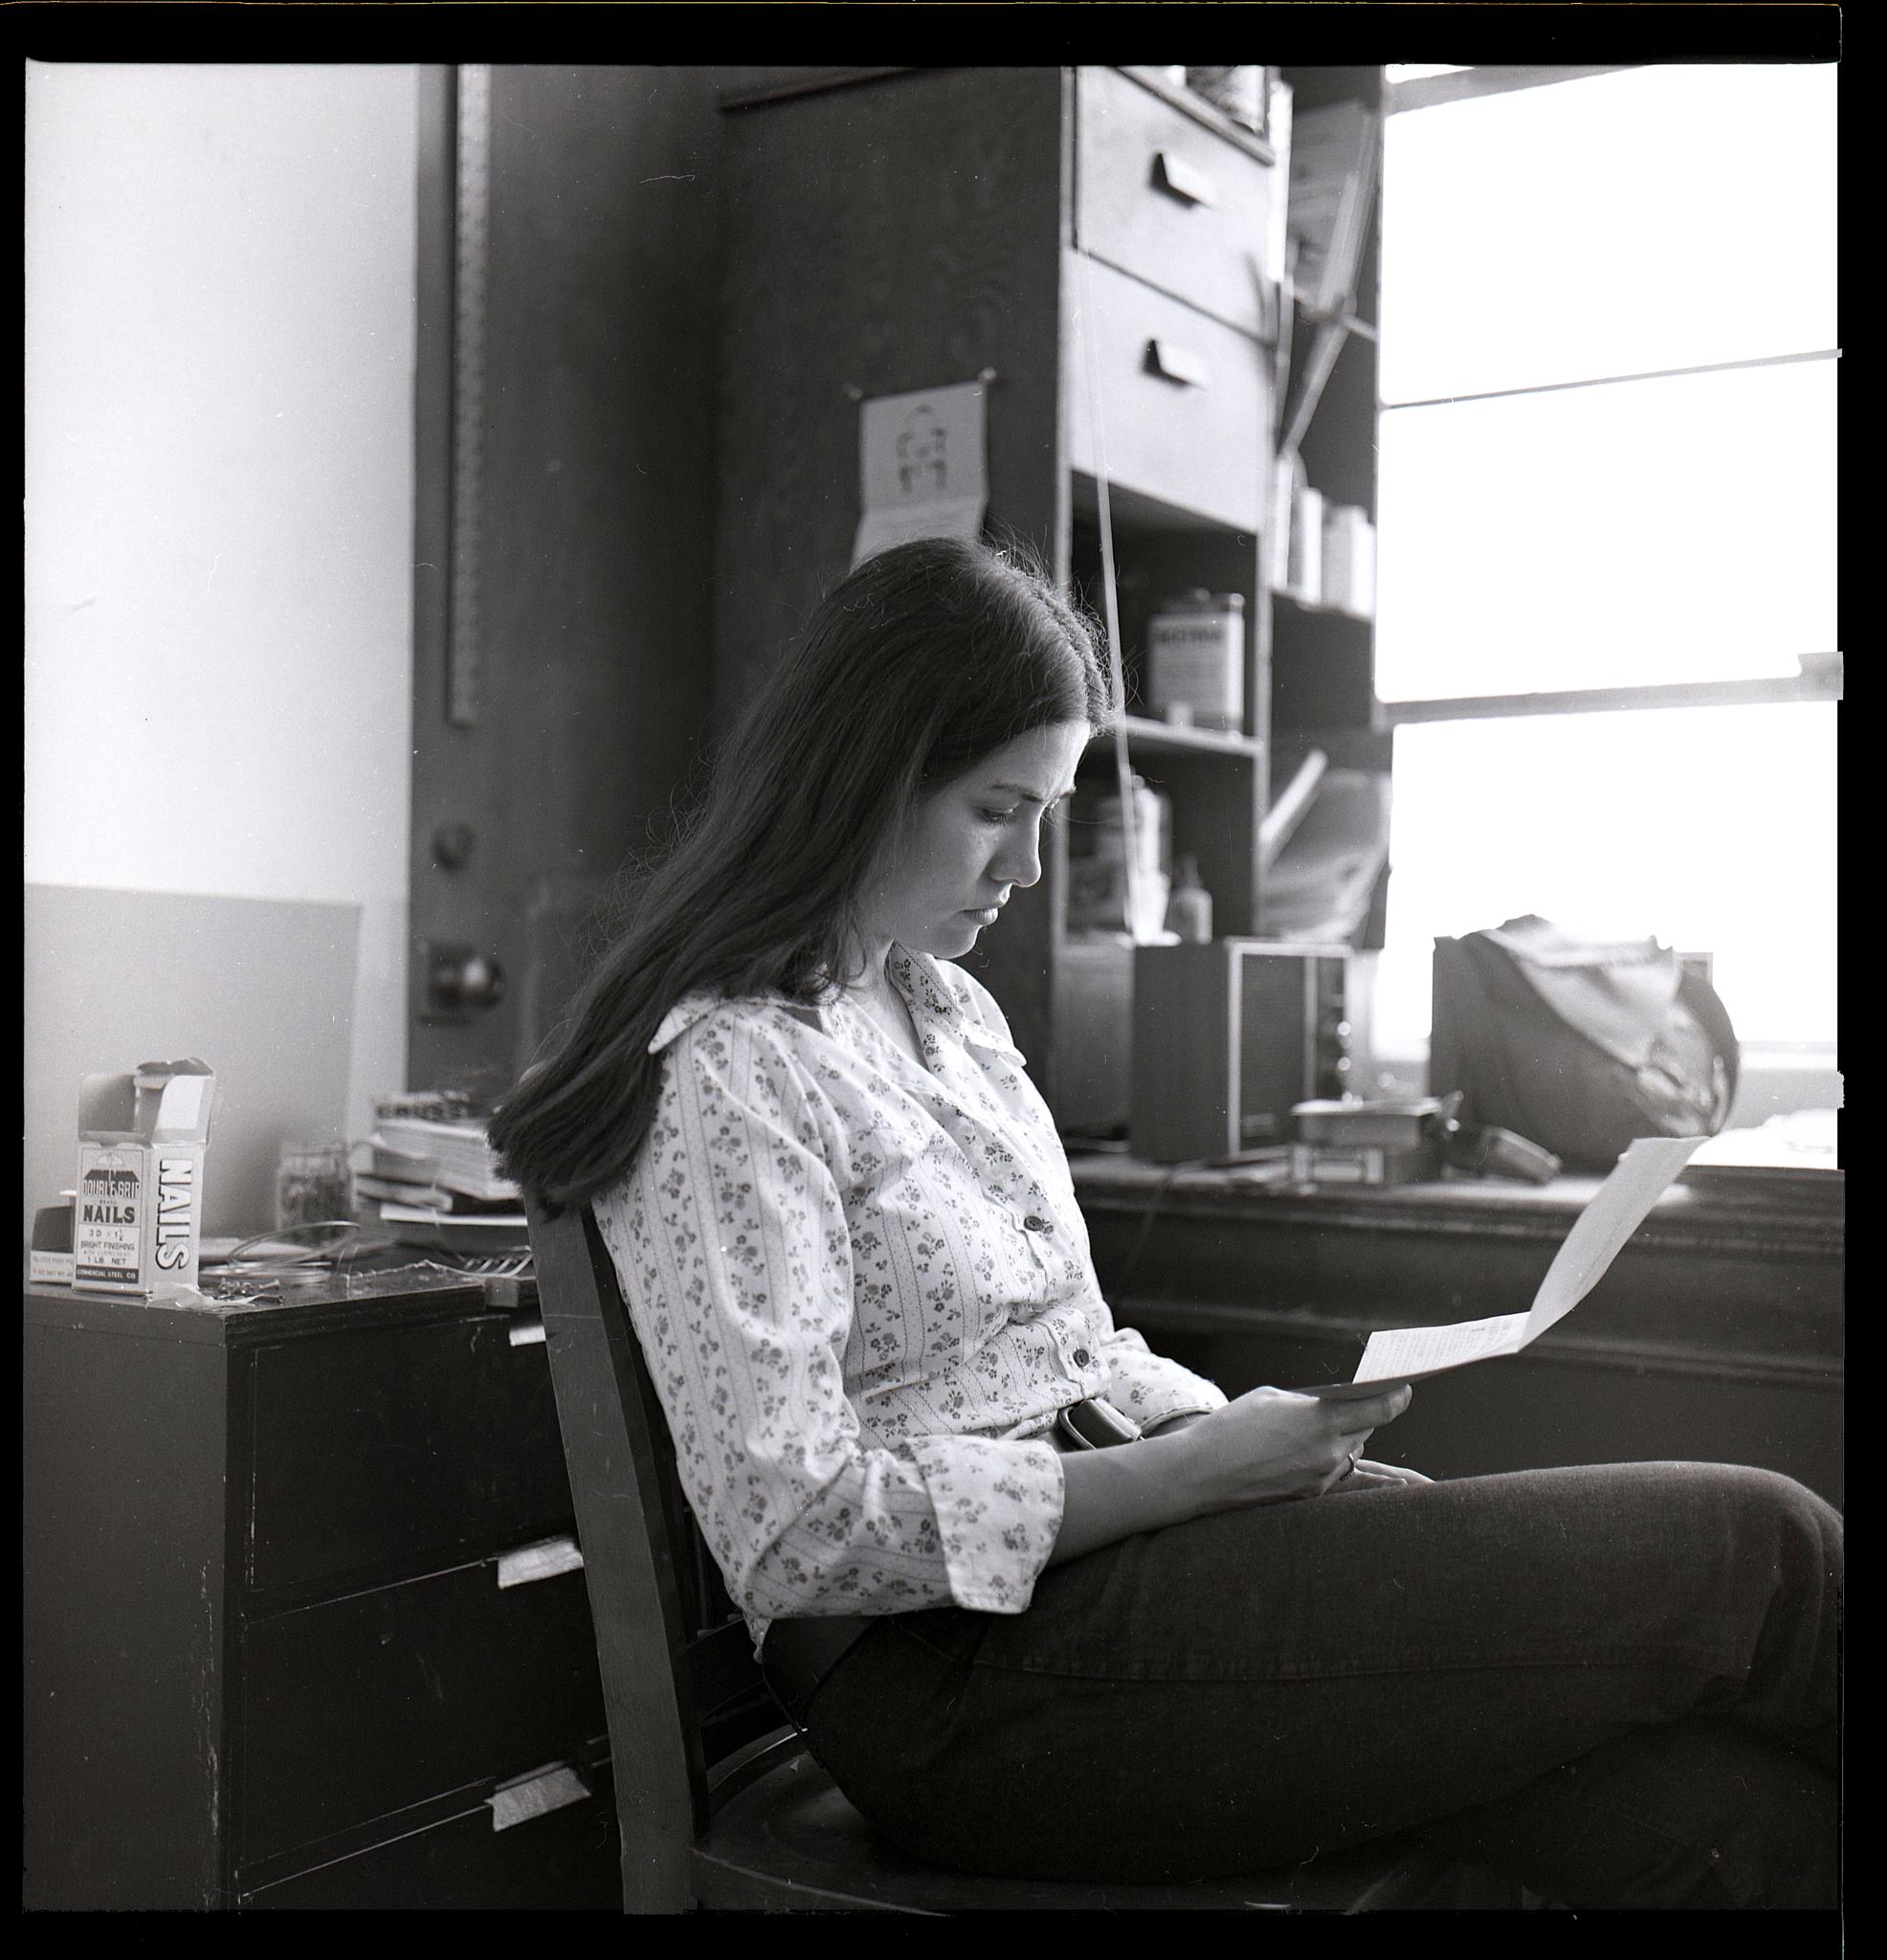 Fran reading in her studio by T R Leventhal